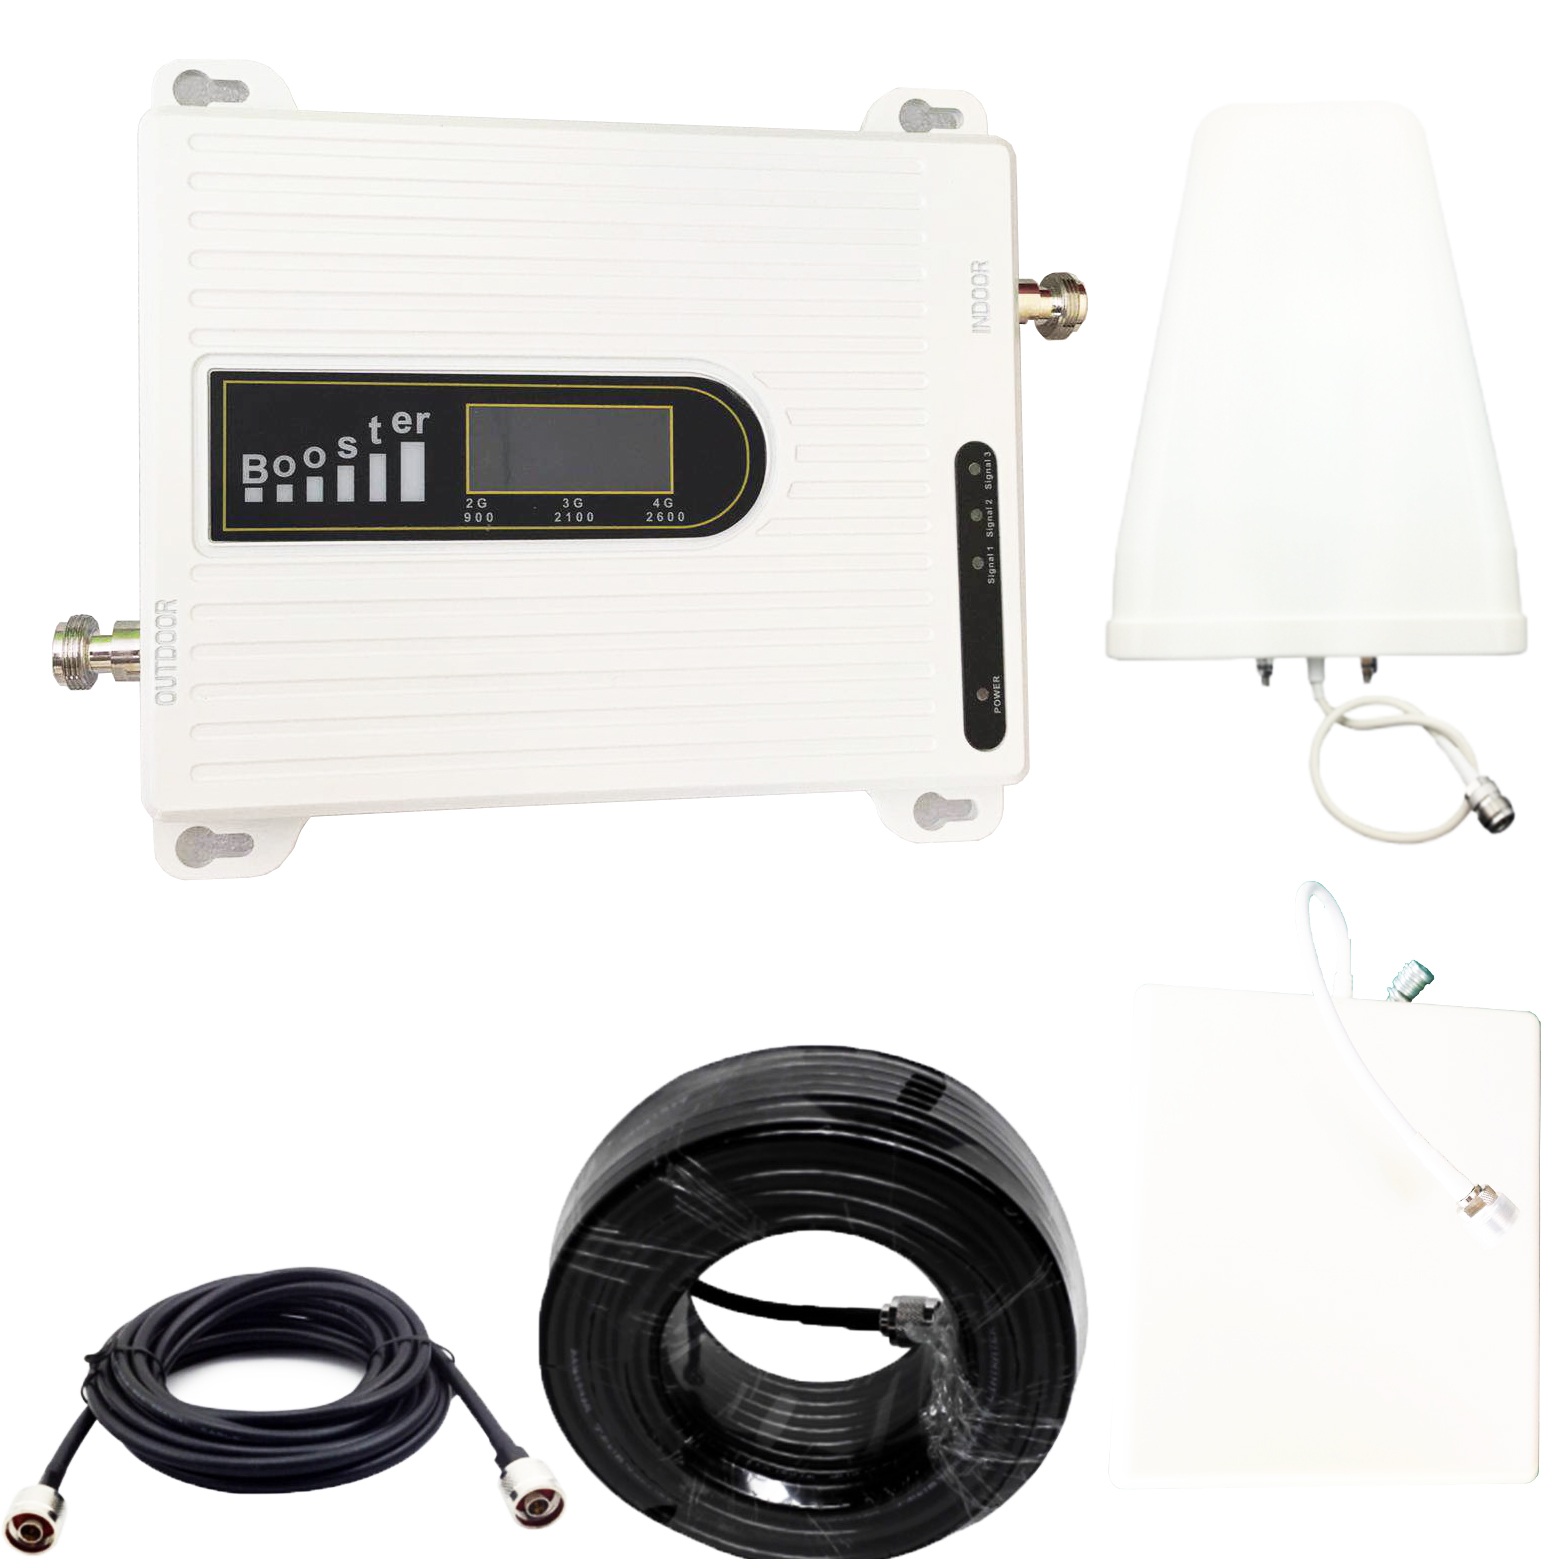 Triple Band Signal Booster 900 2100 2600 Mhz  Mobile Phone Signal Repeater Cell Phone Cellular Amplifier 2600MHZ 2g 3g 4g GSM